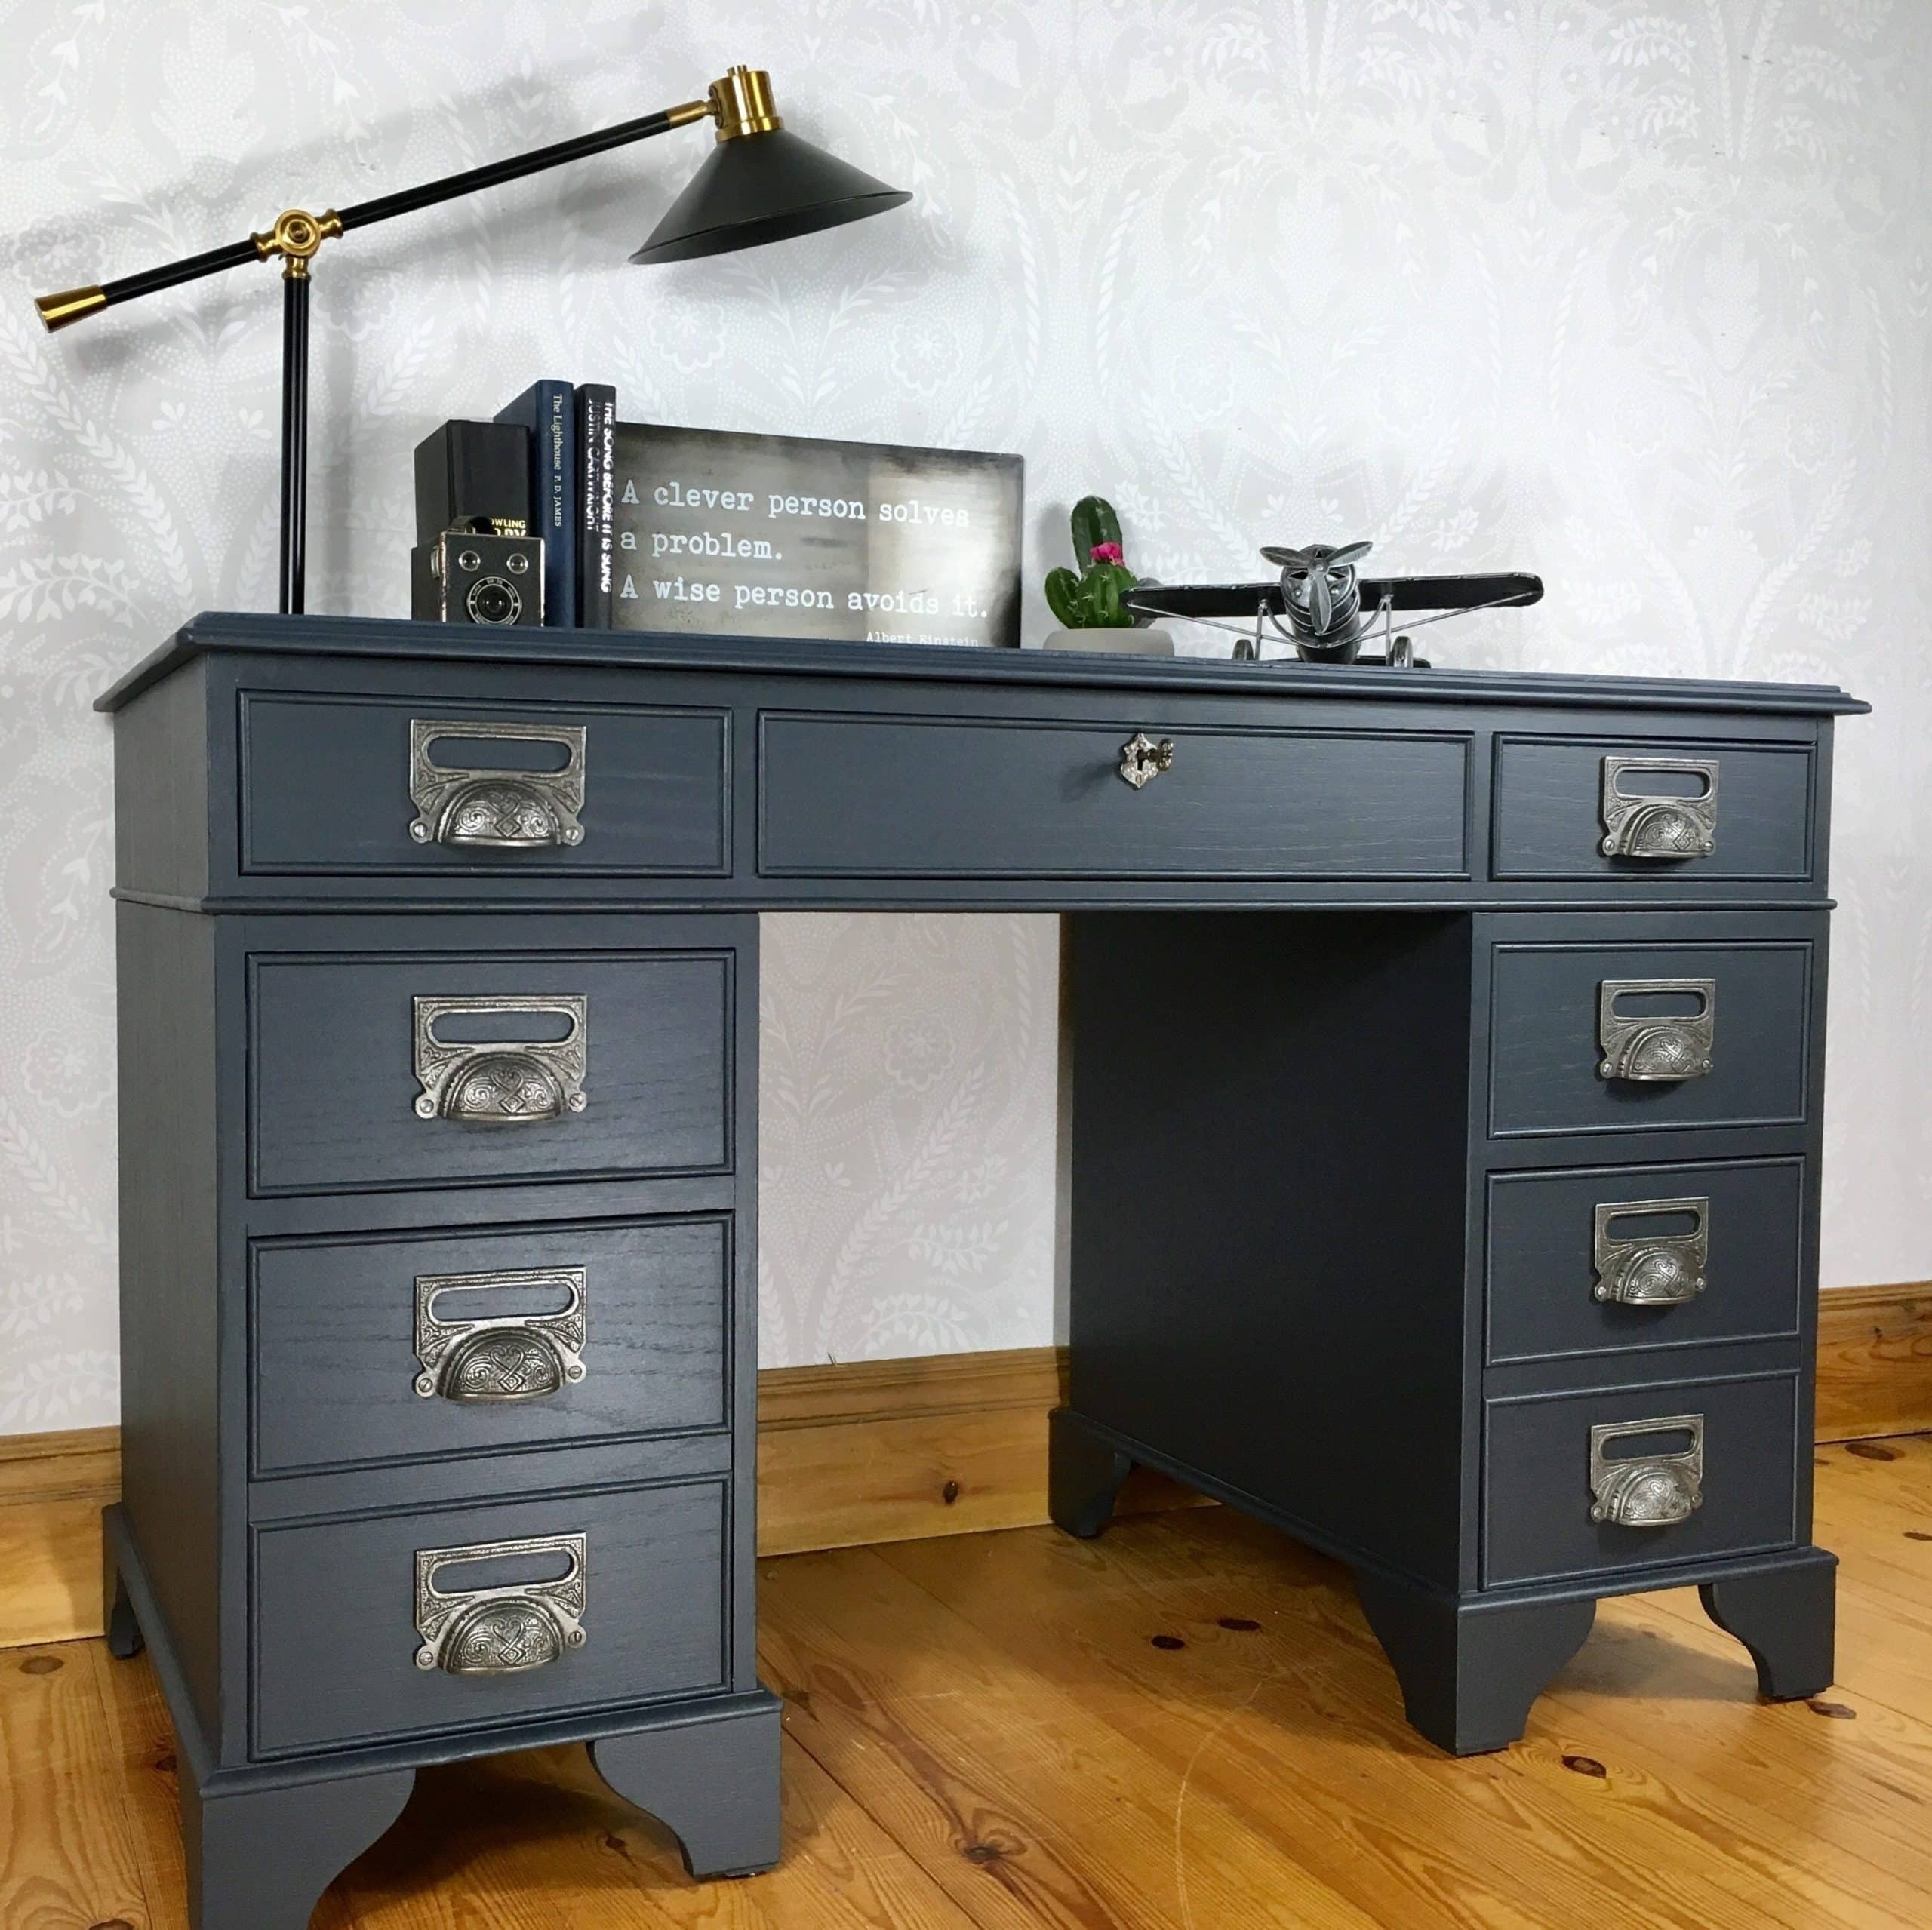 double pedestal desk office desk large study desk dark blue painted wooden desk 0 1 edited scaled